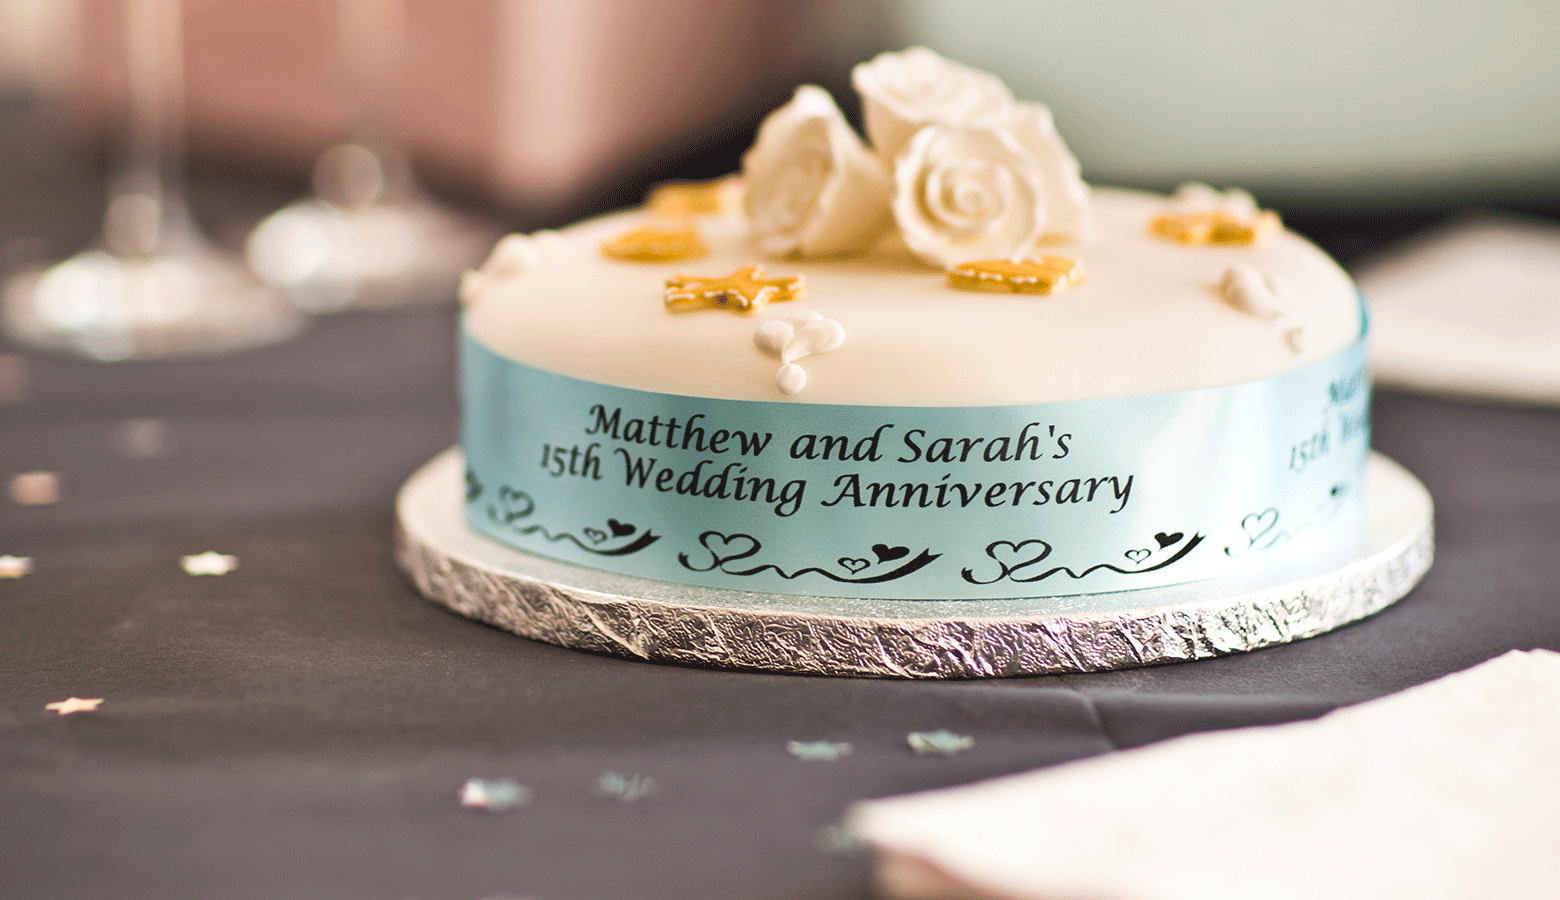 15th wedding anniversary cake with a baby blue ribbon